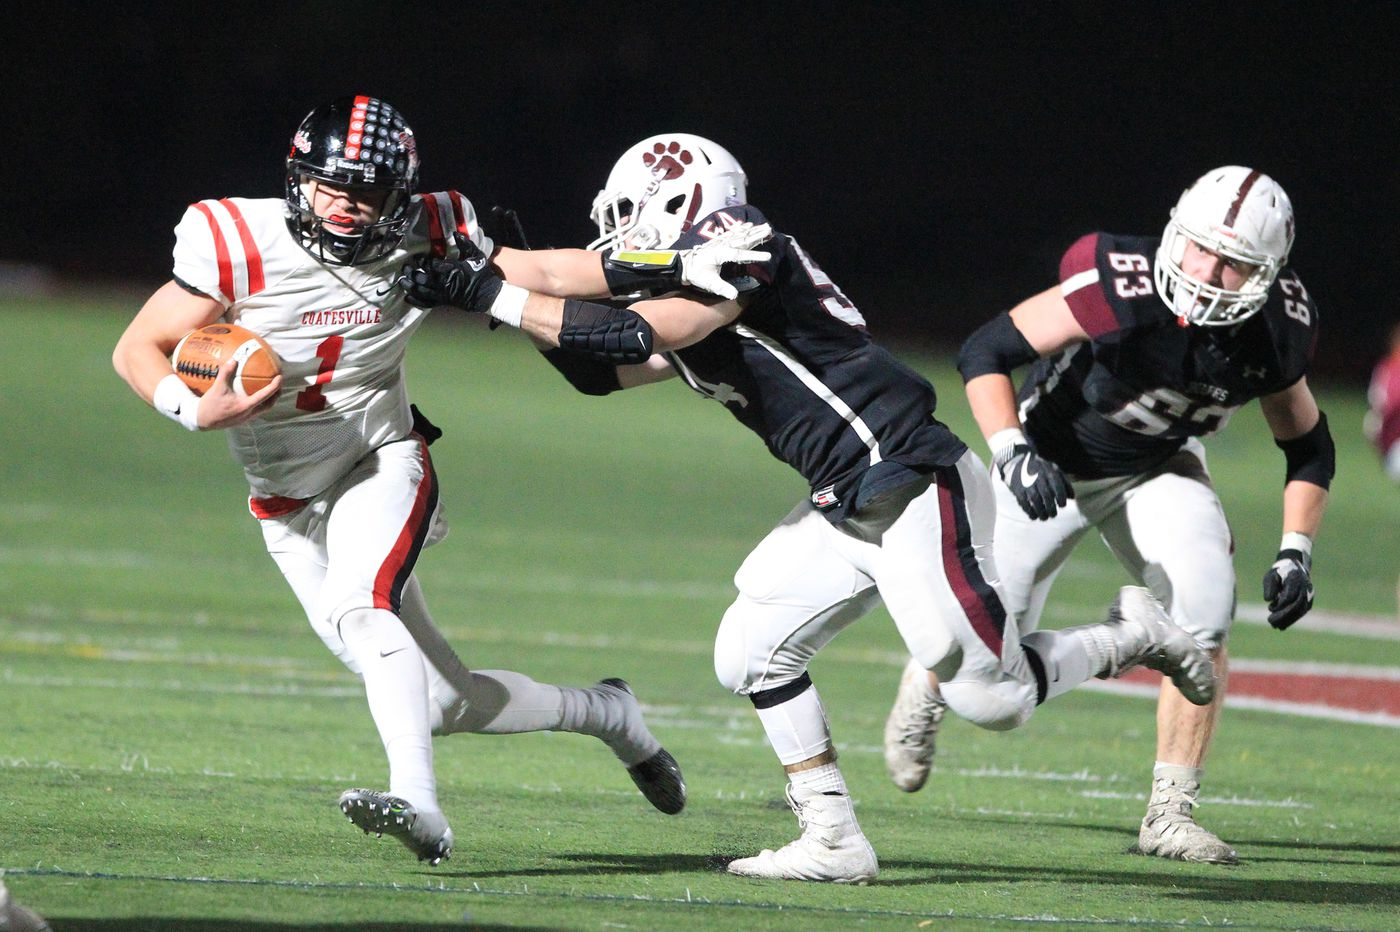 Saturday's Pa. high school football roundup: Coatesville run their own 'Philly Special' in win over Harrisburg